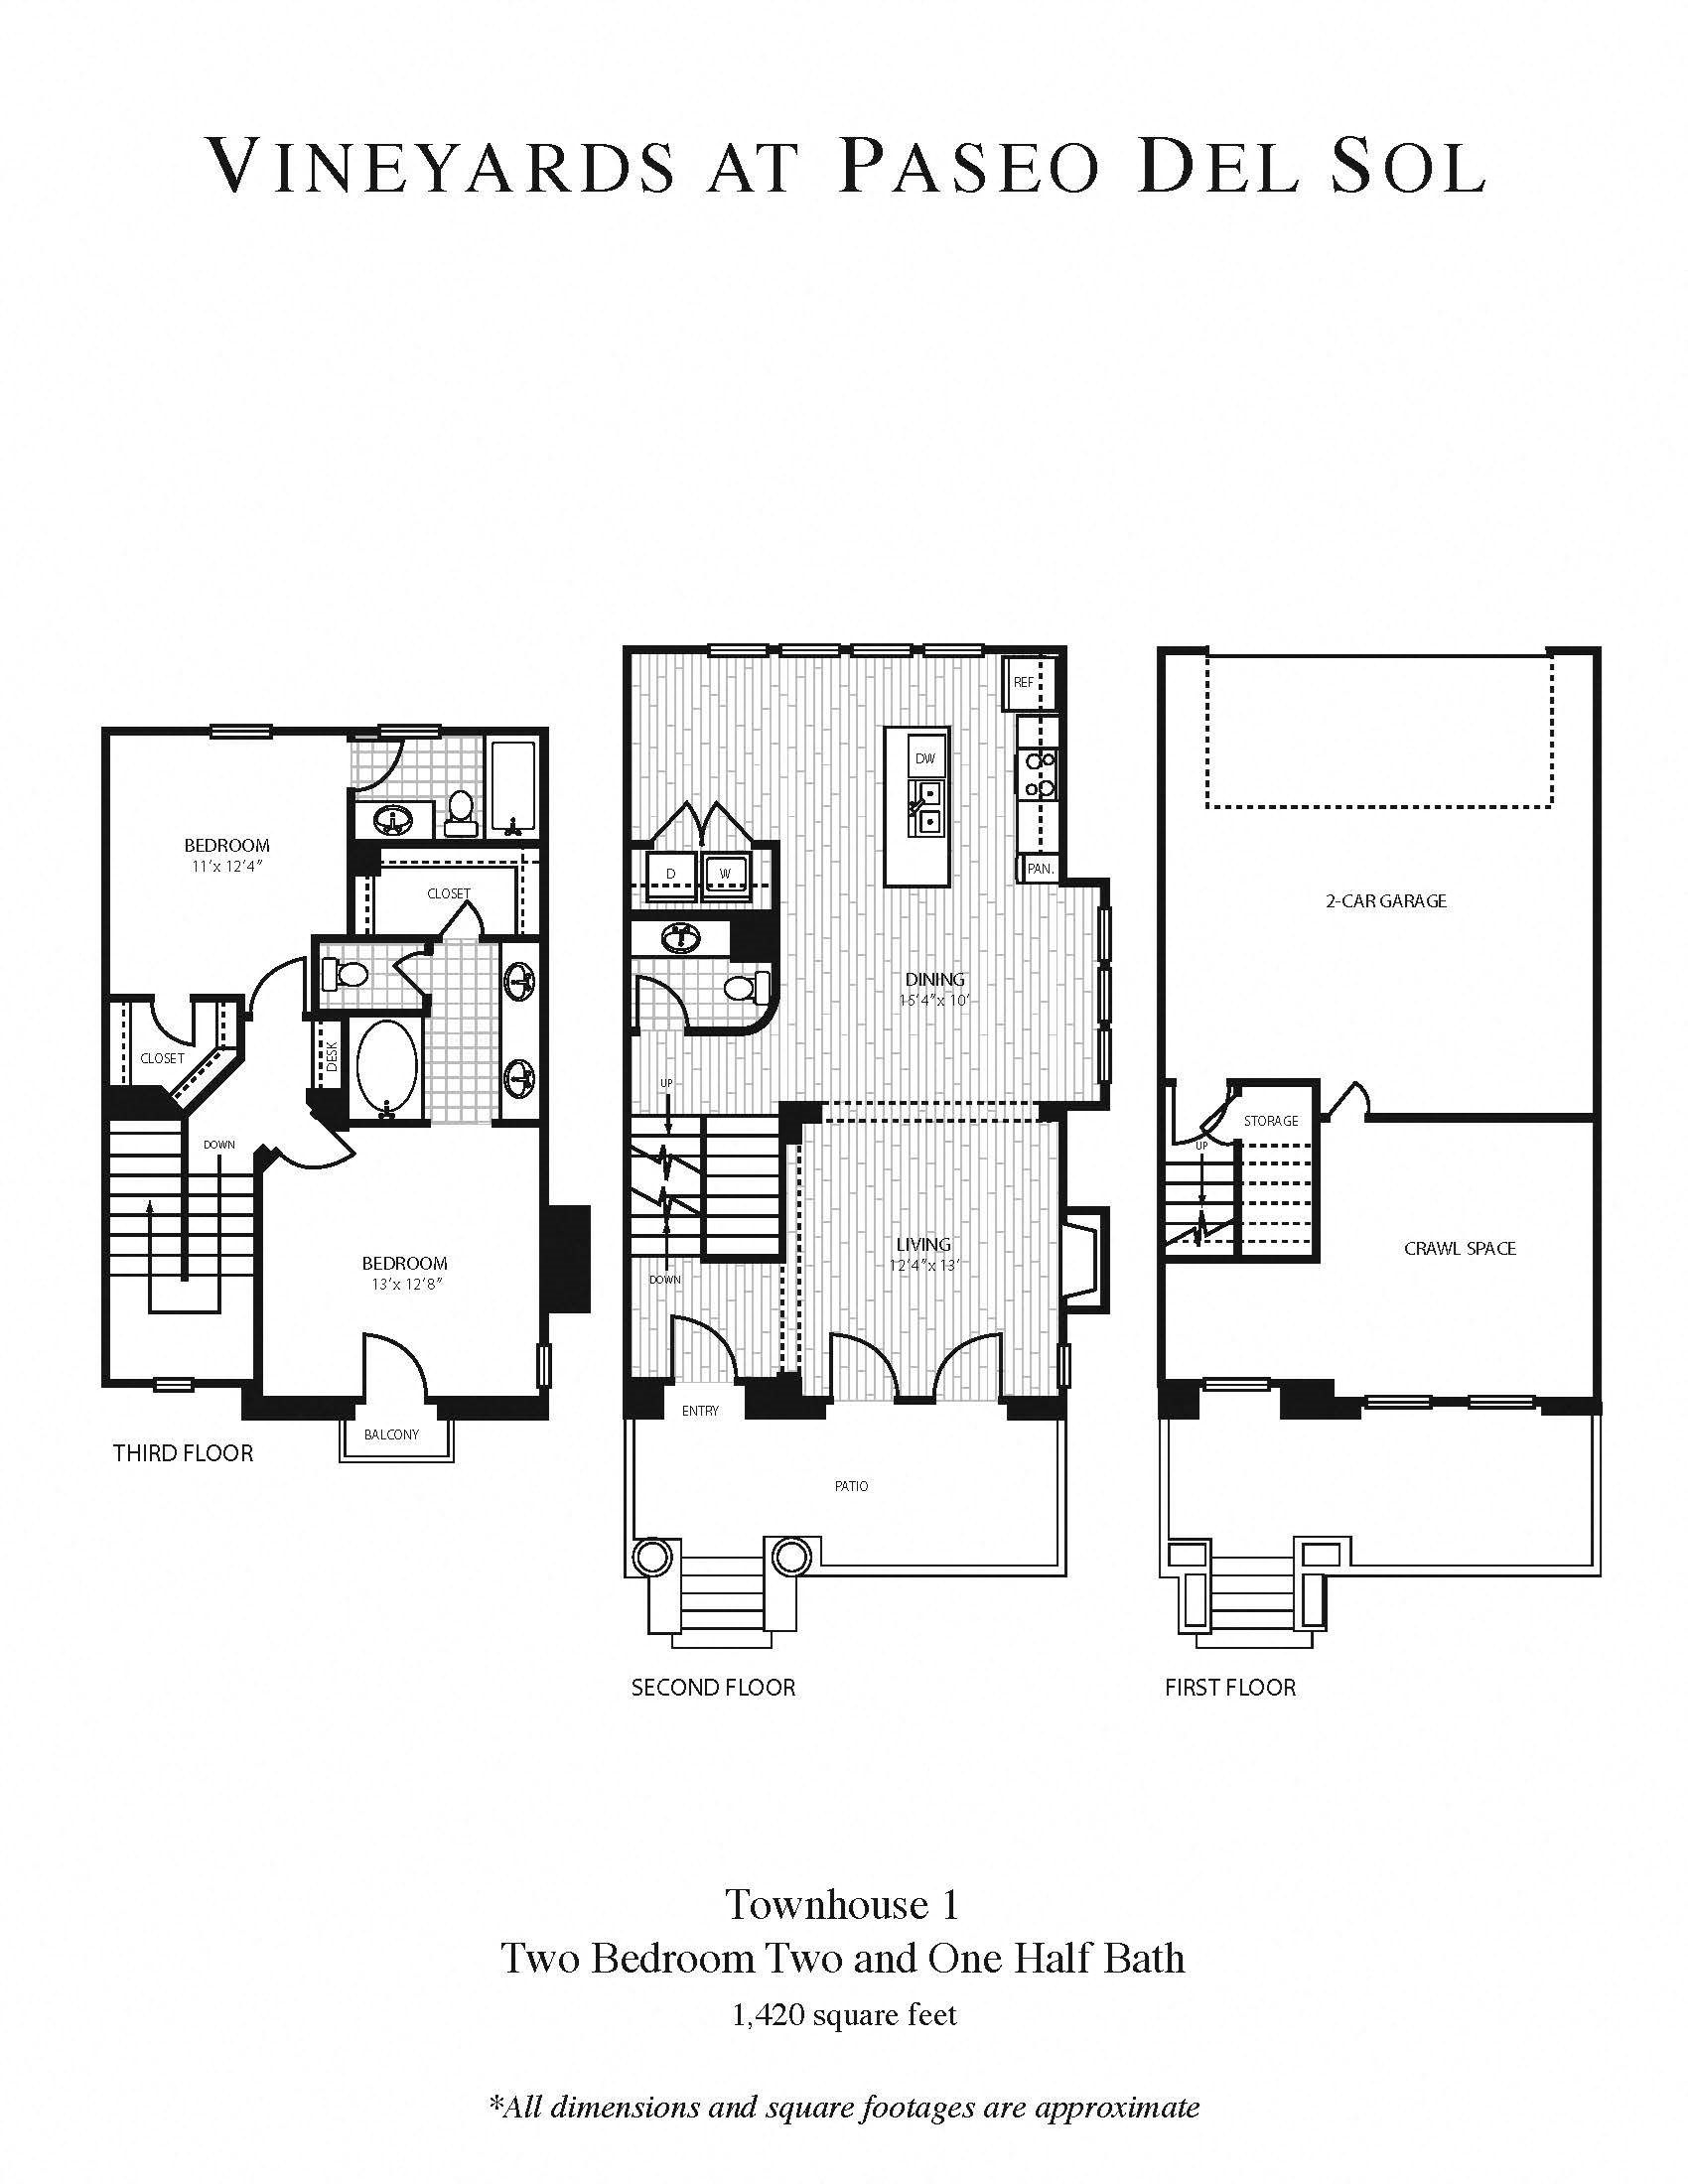 2b/2b - Townhouse Floor Plan 7